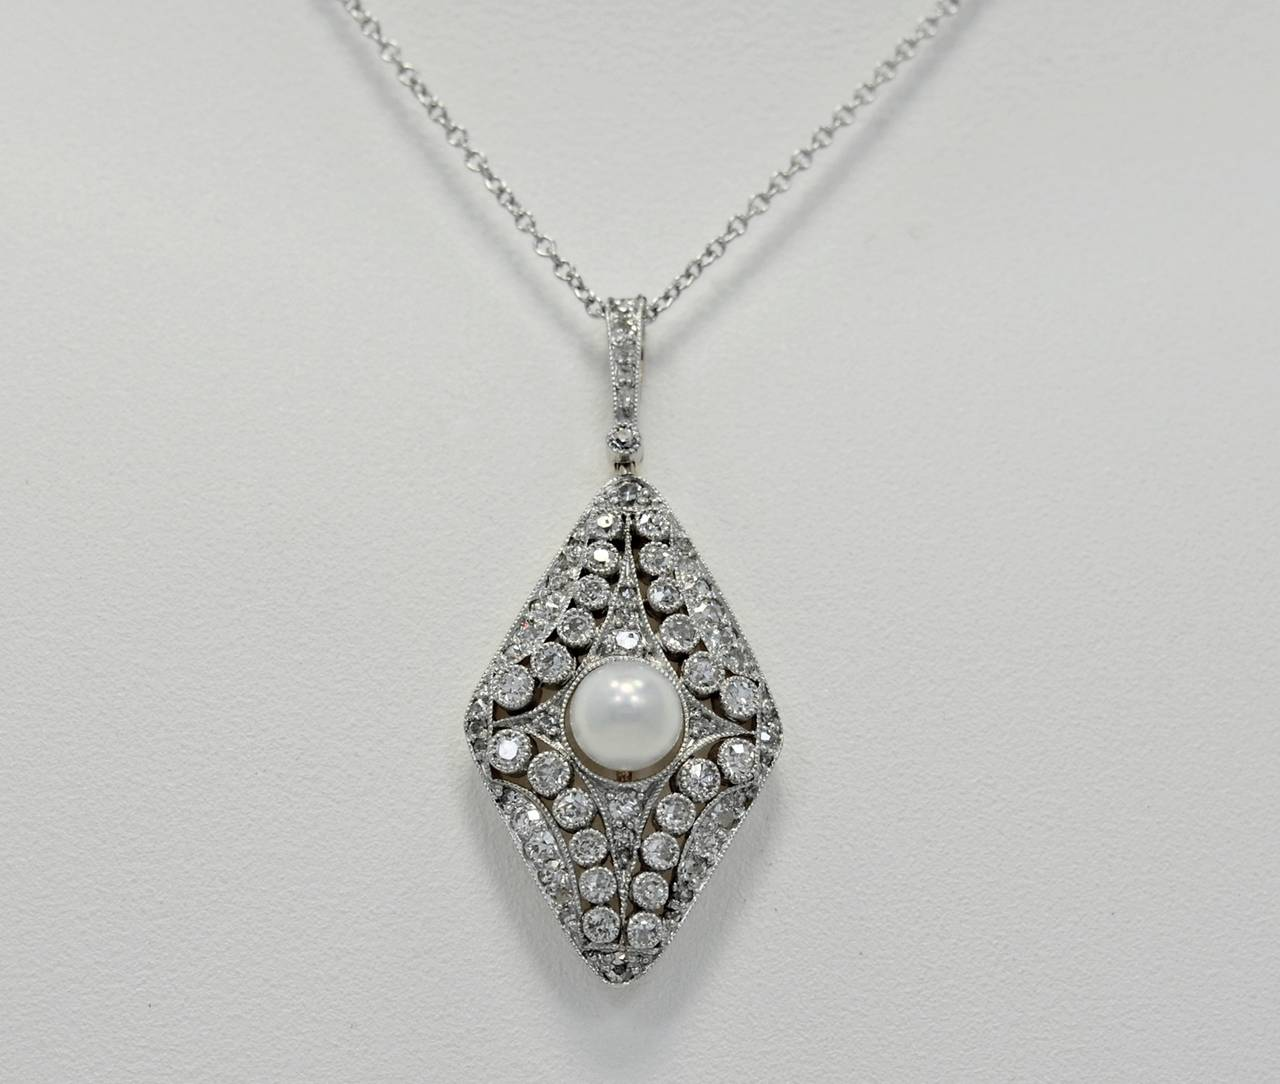 J35033